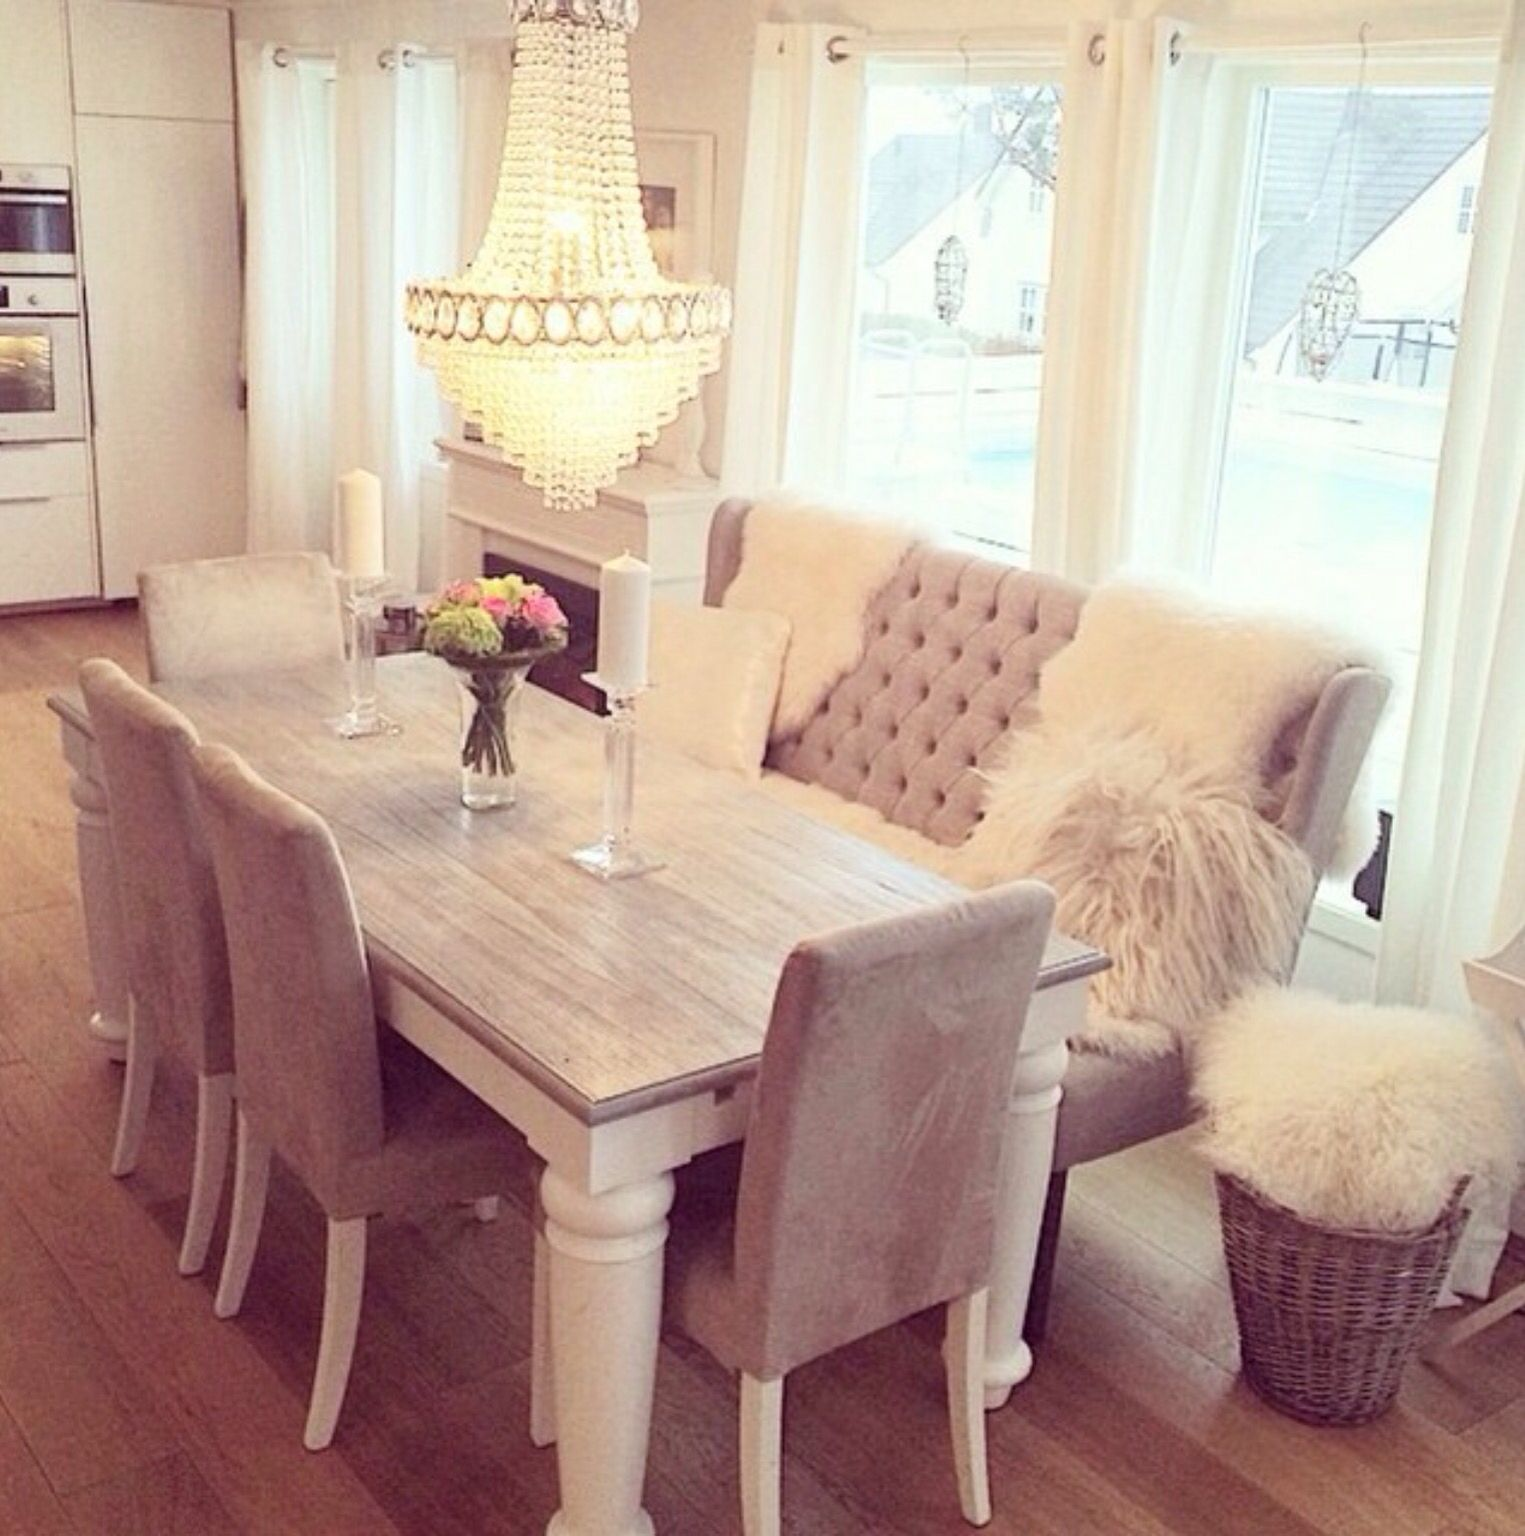 Love The Grey Chairs With The Bench. Keeping The Same Color Theme But  Unique Pieces U0026 Textures ❤️